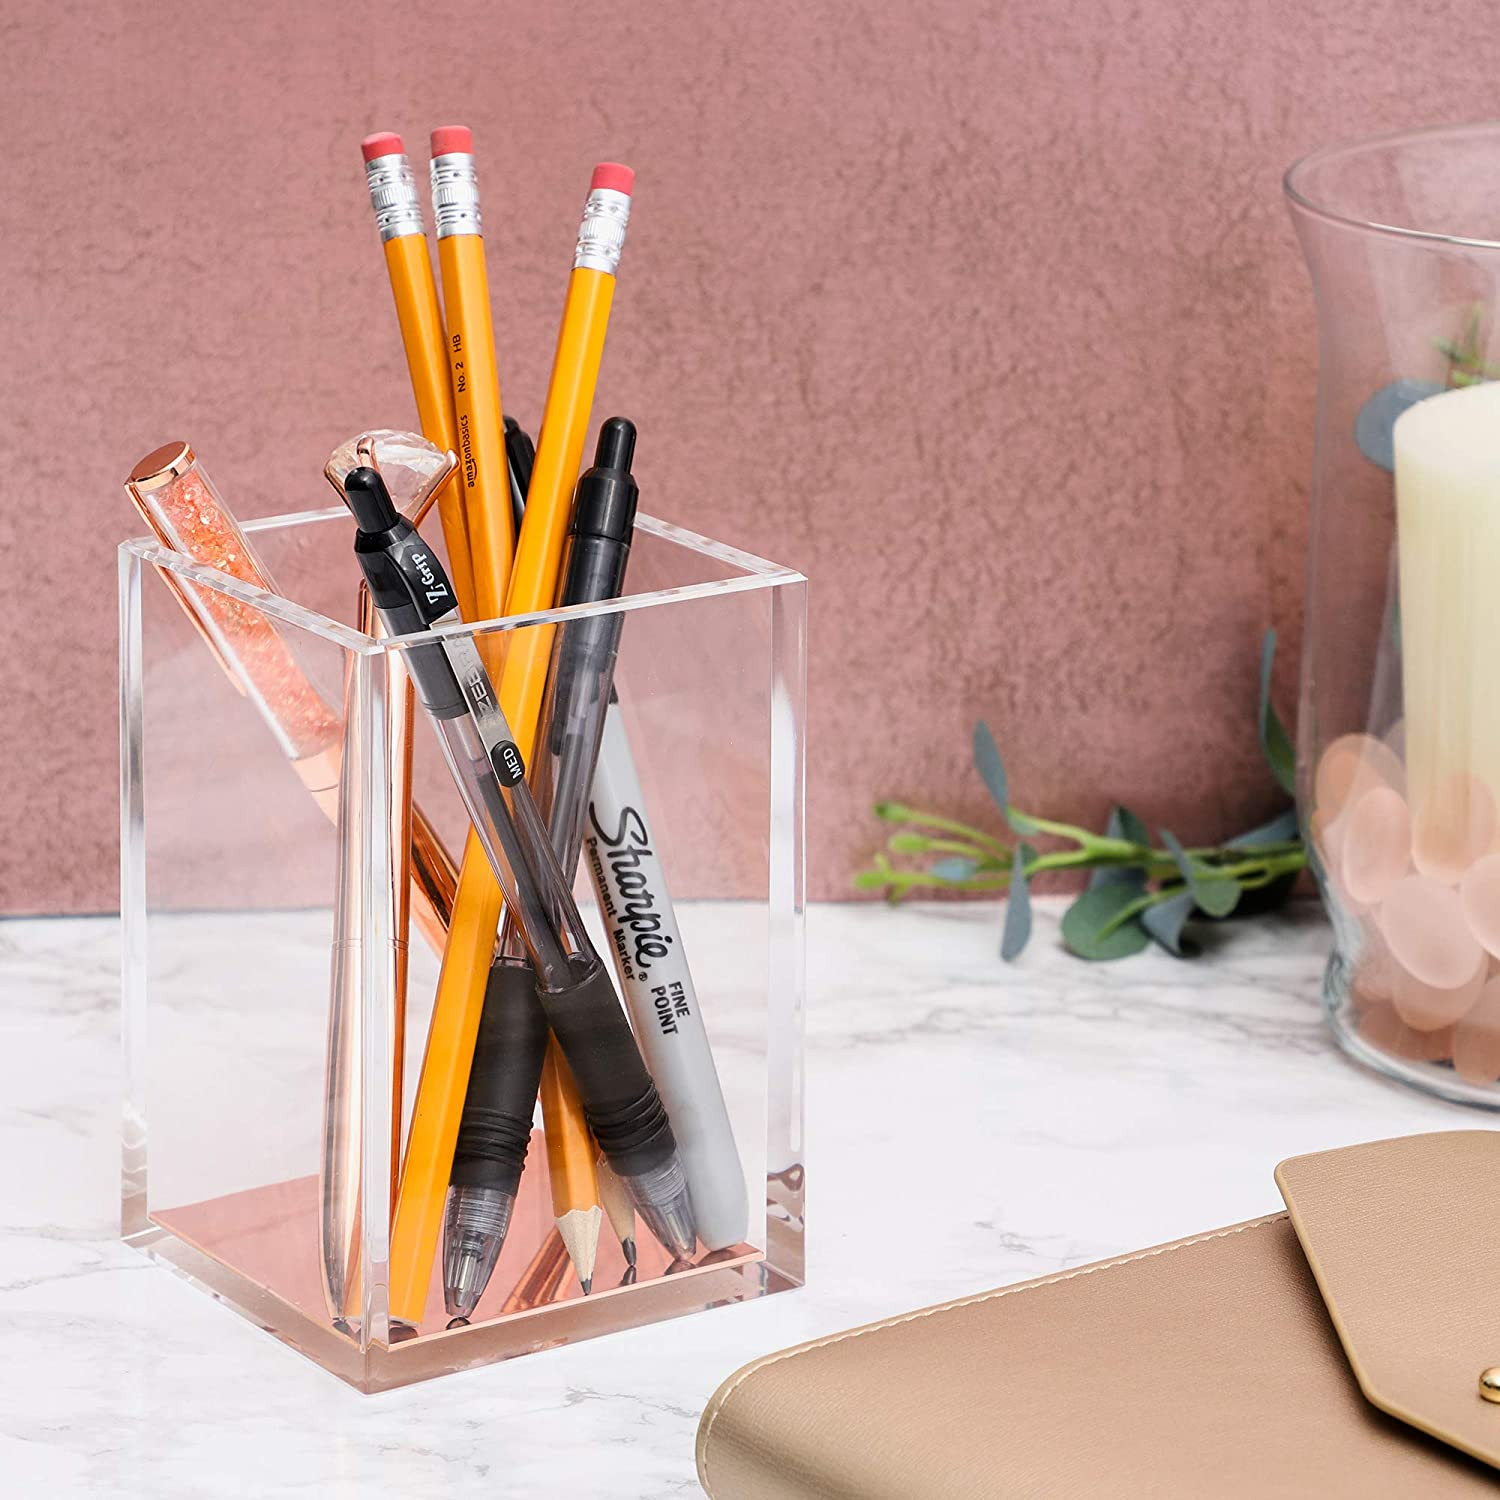 Acrylic Pen Holder 3.1 x 4.5 x 3.1 Inches Desk Organization Clear with Rose Gold Bottom Desk Caddy Modern Office Accessories Clear Stationery Organizer